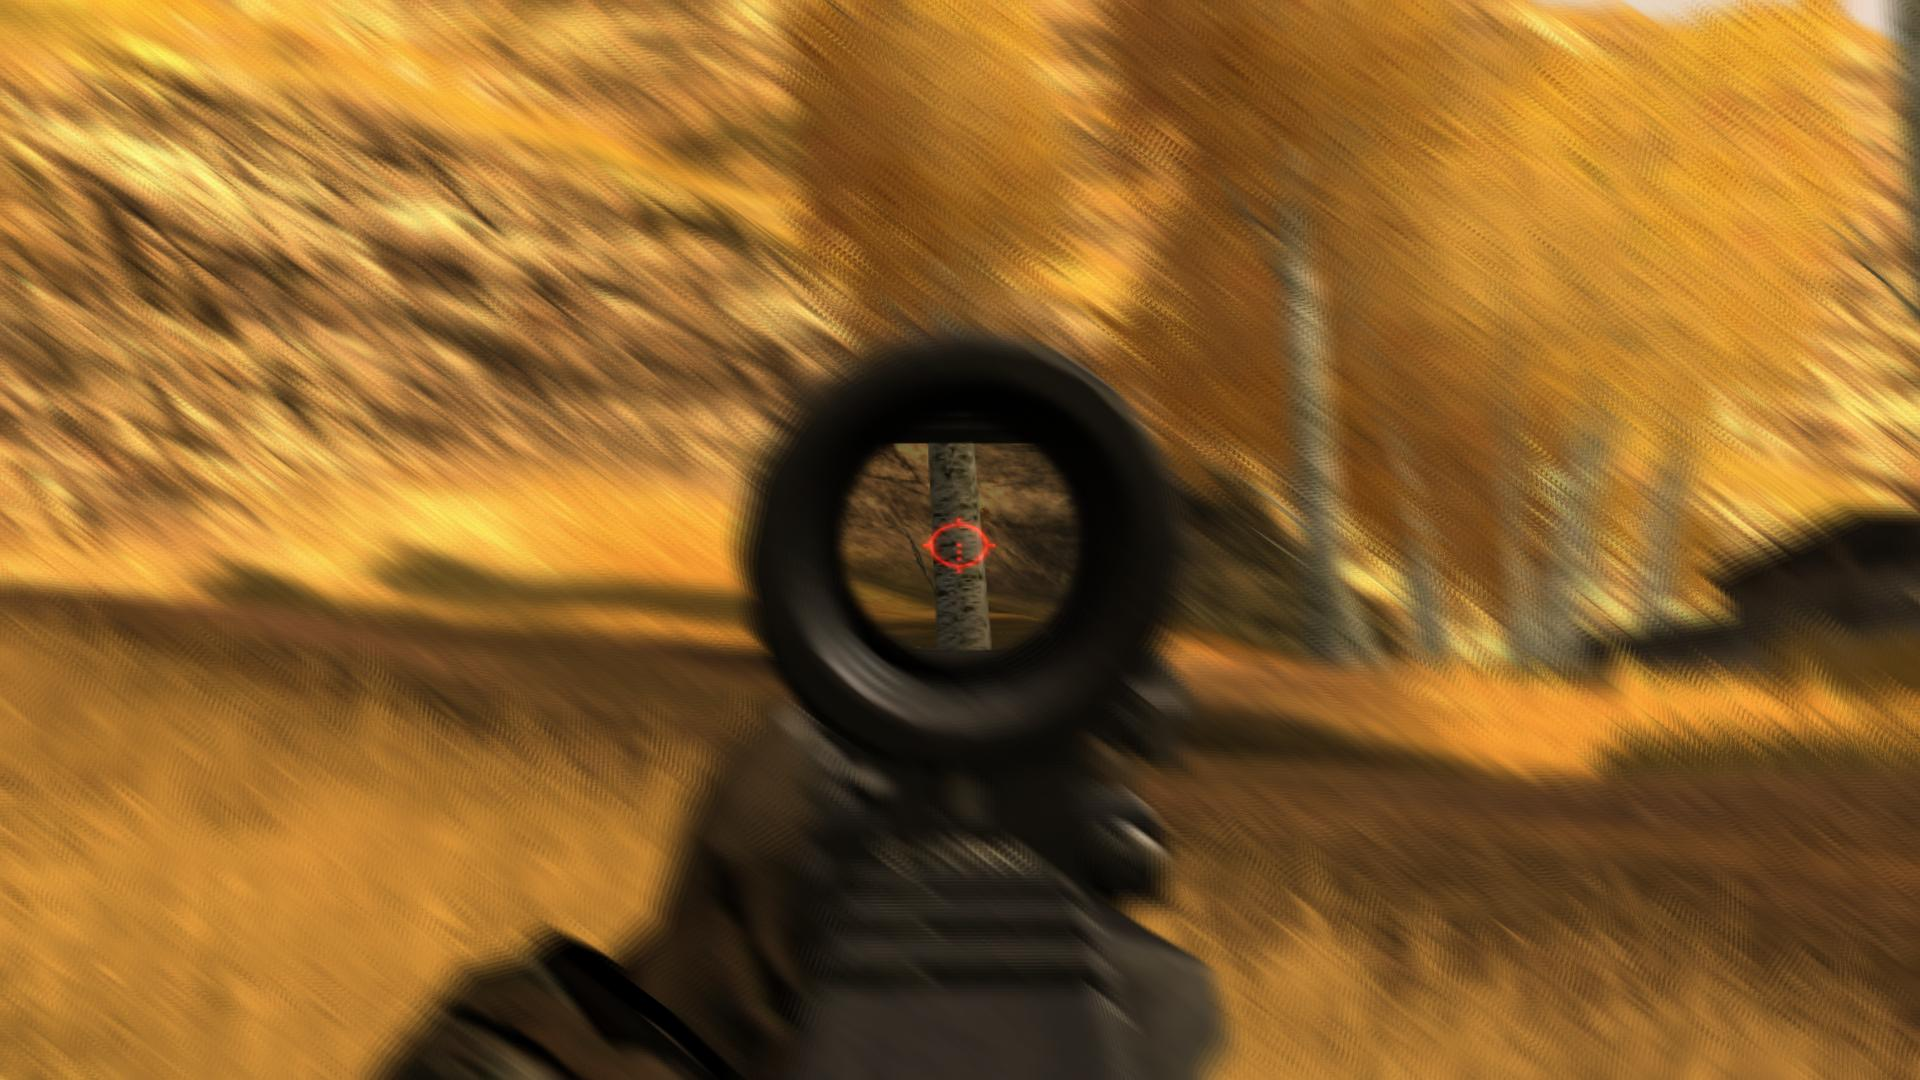 EoTech FTS Magnifier Ingame image - Alpha Project mod for